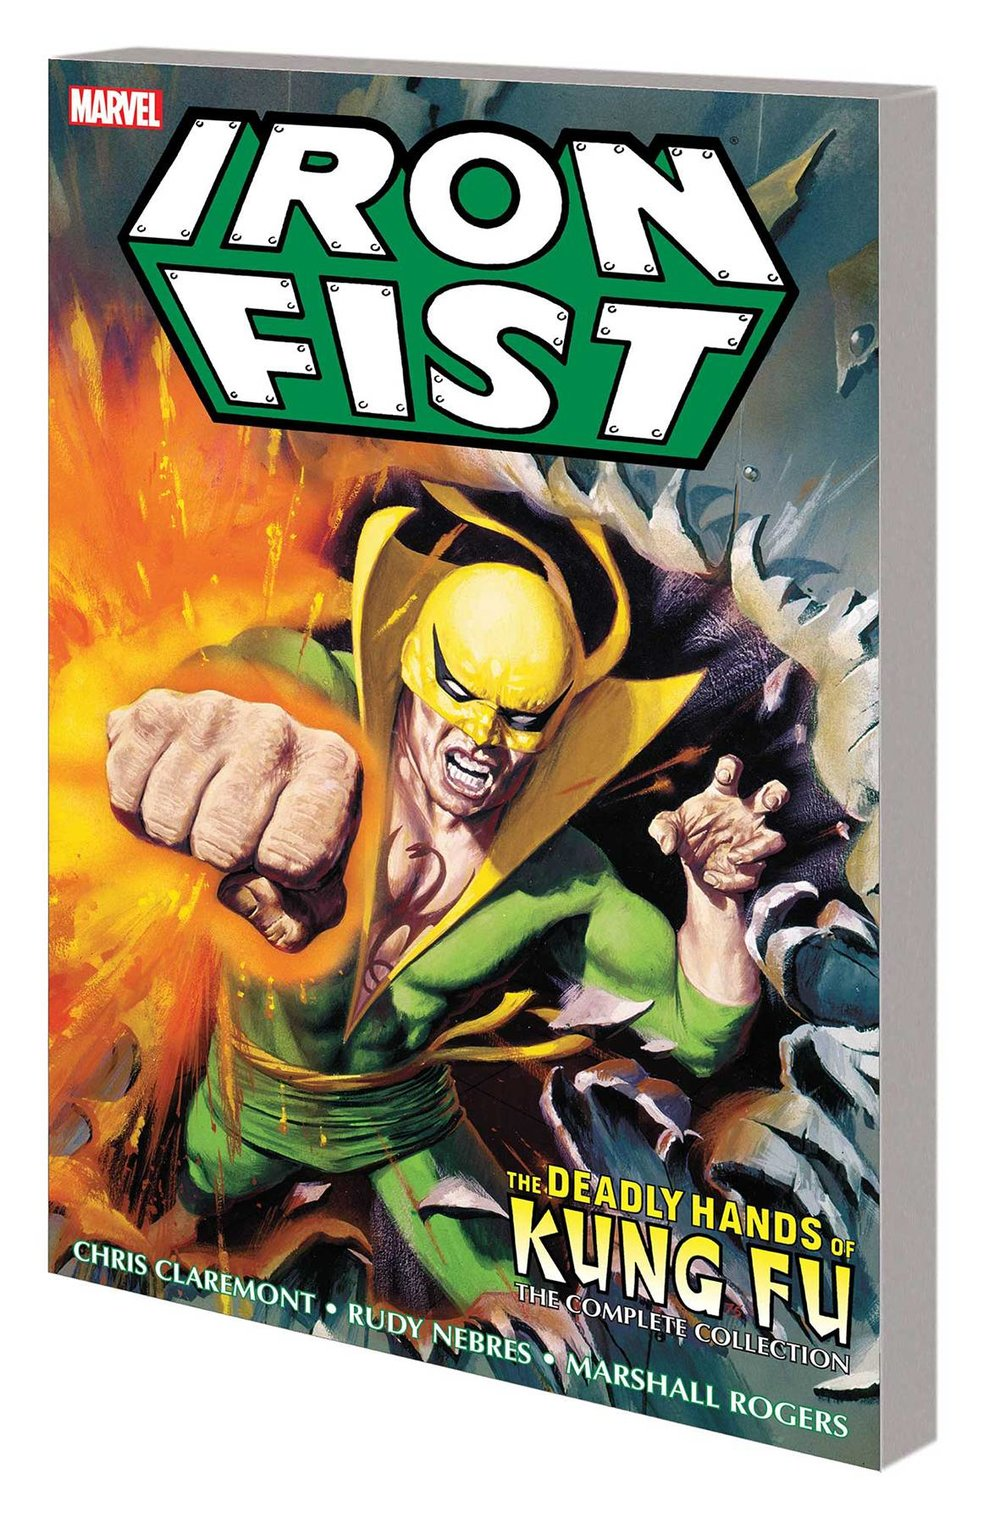 IRON FIST DEADLY HANDS KUNG FU TP COMPLETE COLLECTION.jpg